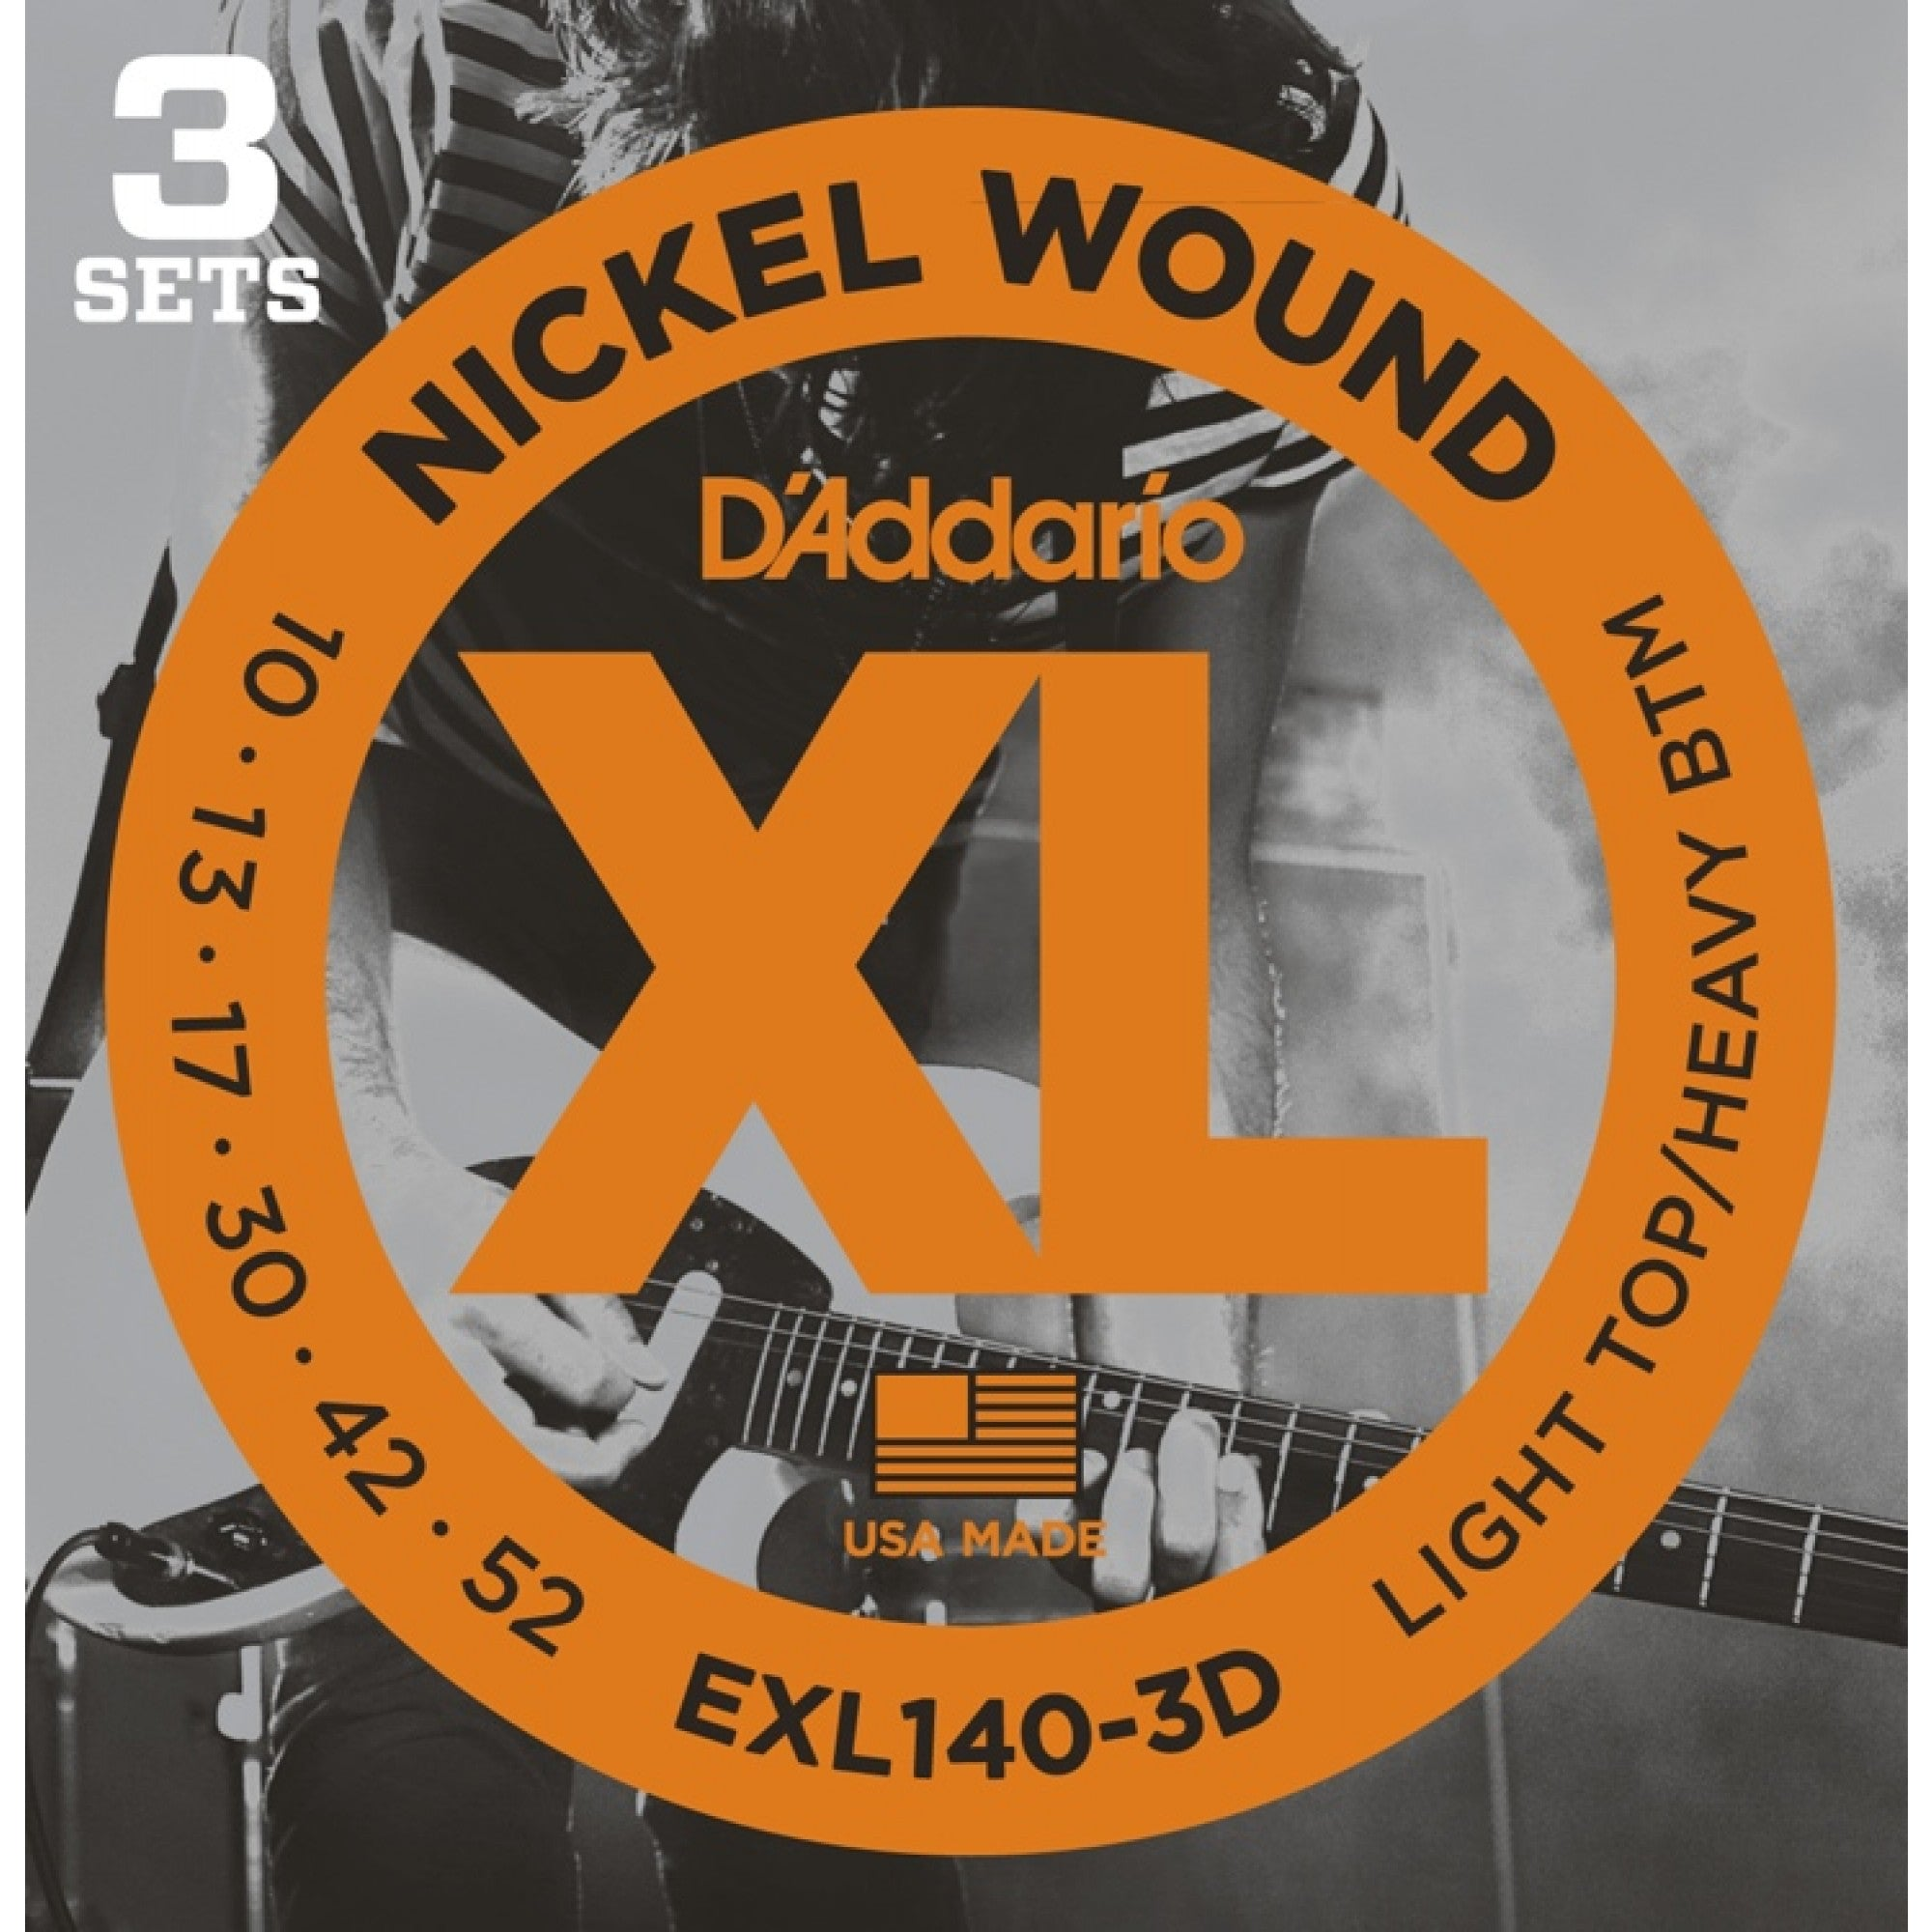 D'ADDARIO EXL140 3 PACK NICKEL WOUND 10-52 LIGHT TOP HEAVY BTM